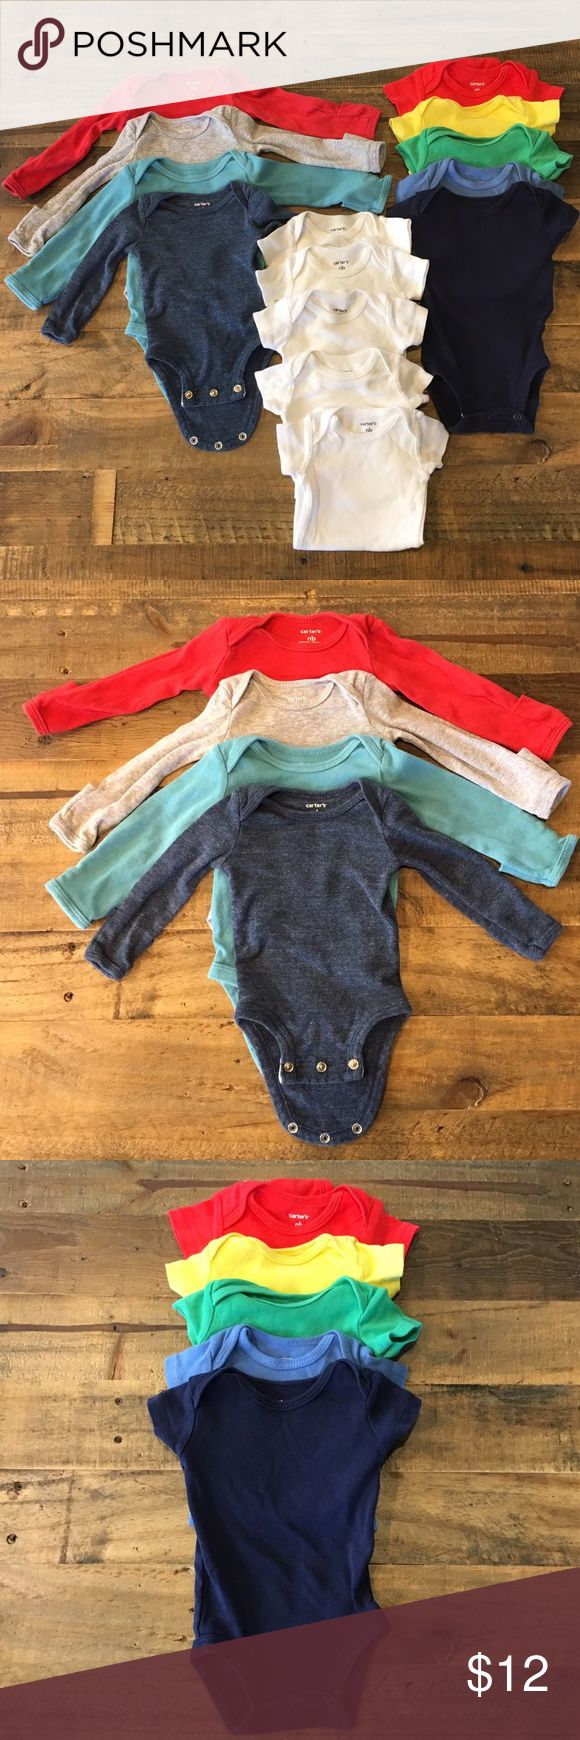 Lot of newborn solid color onesies. Variety of solid color onesies. All newborn size. Four colored long sleeve with optional roll over mittens, five colored short sleeve onesies, and five white onesies. Great condition. Gently used. Carter's Other